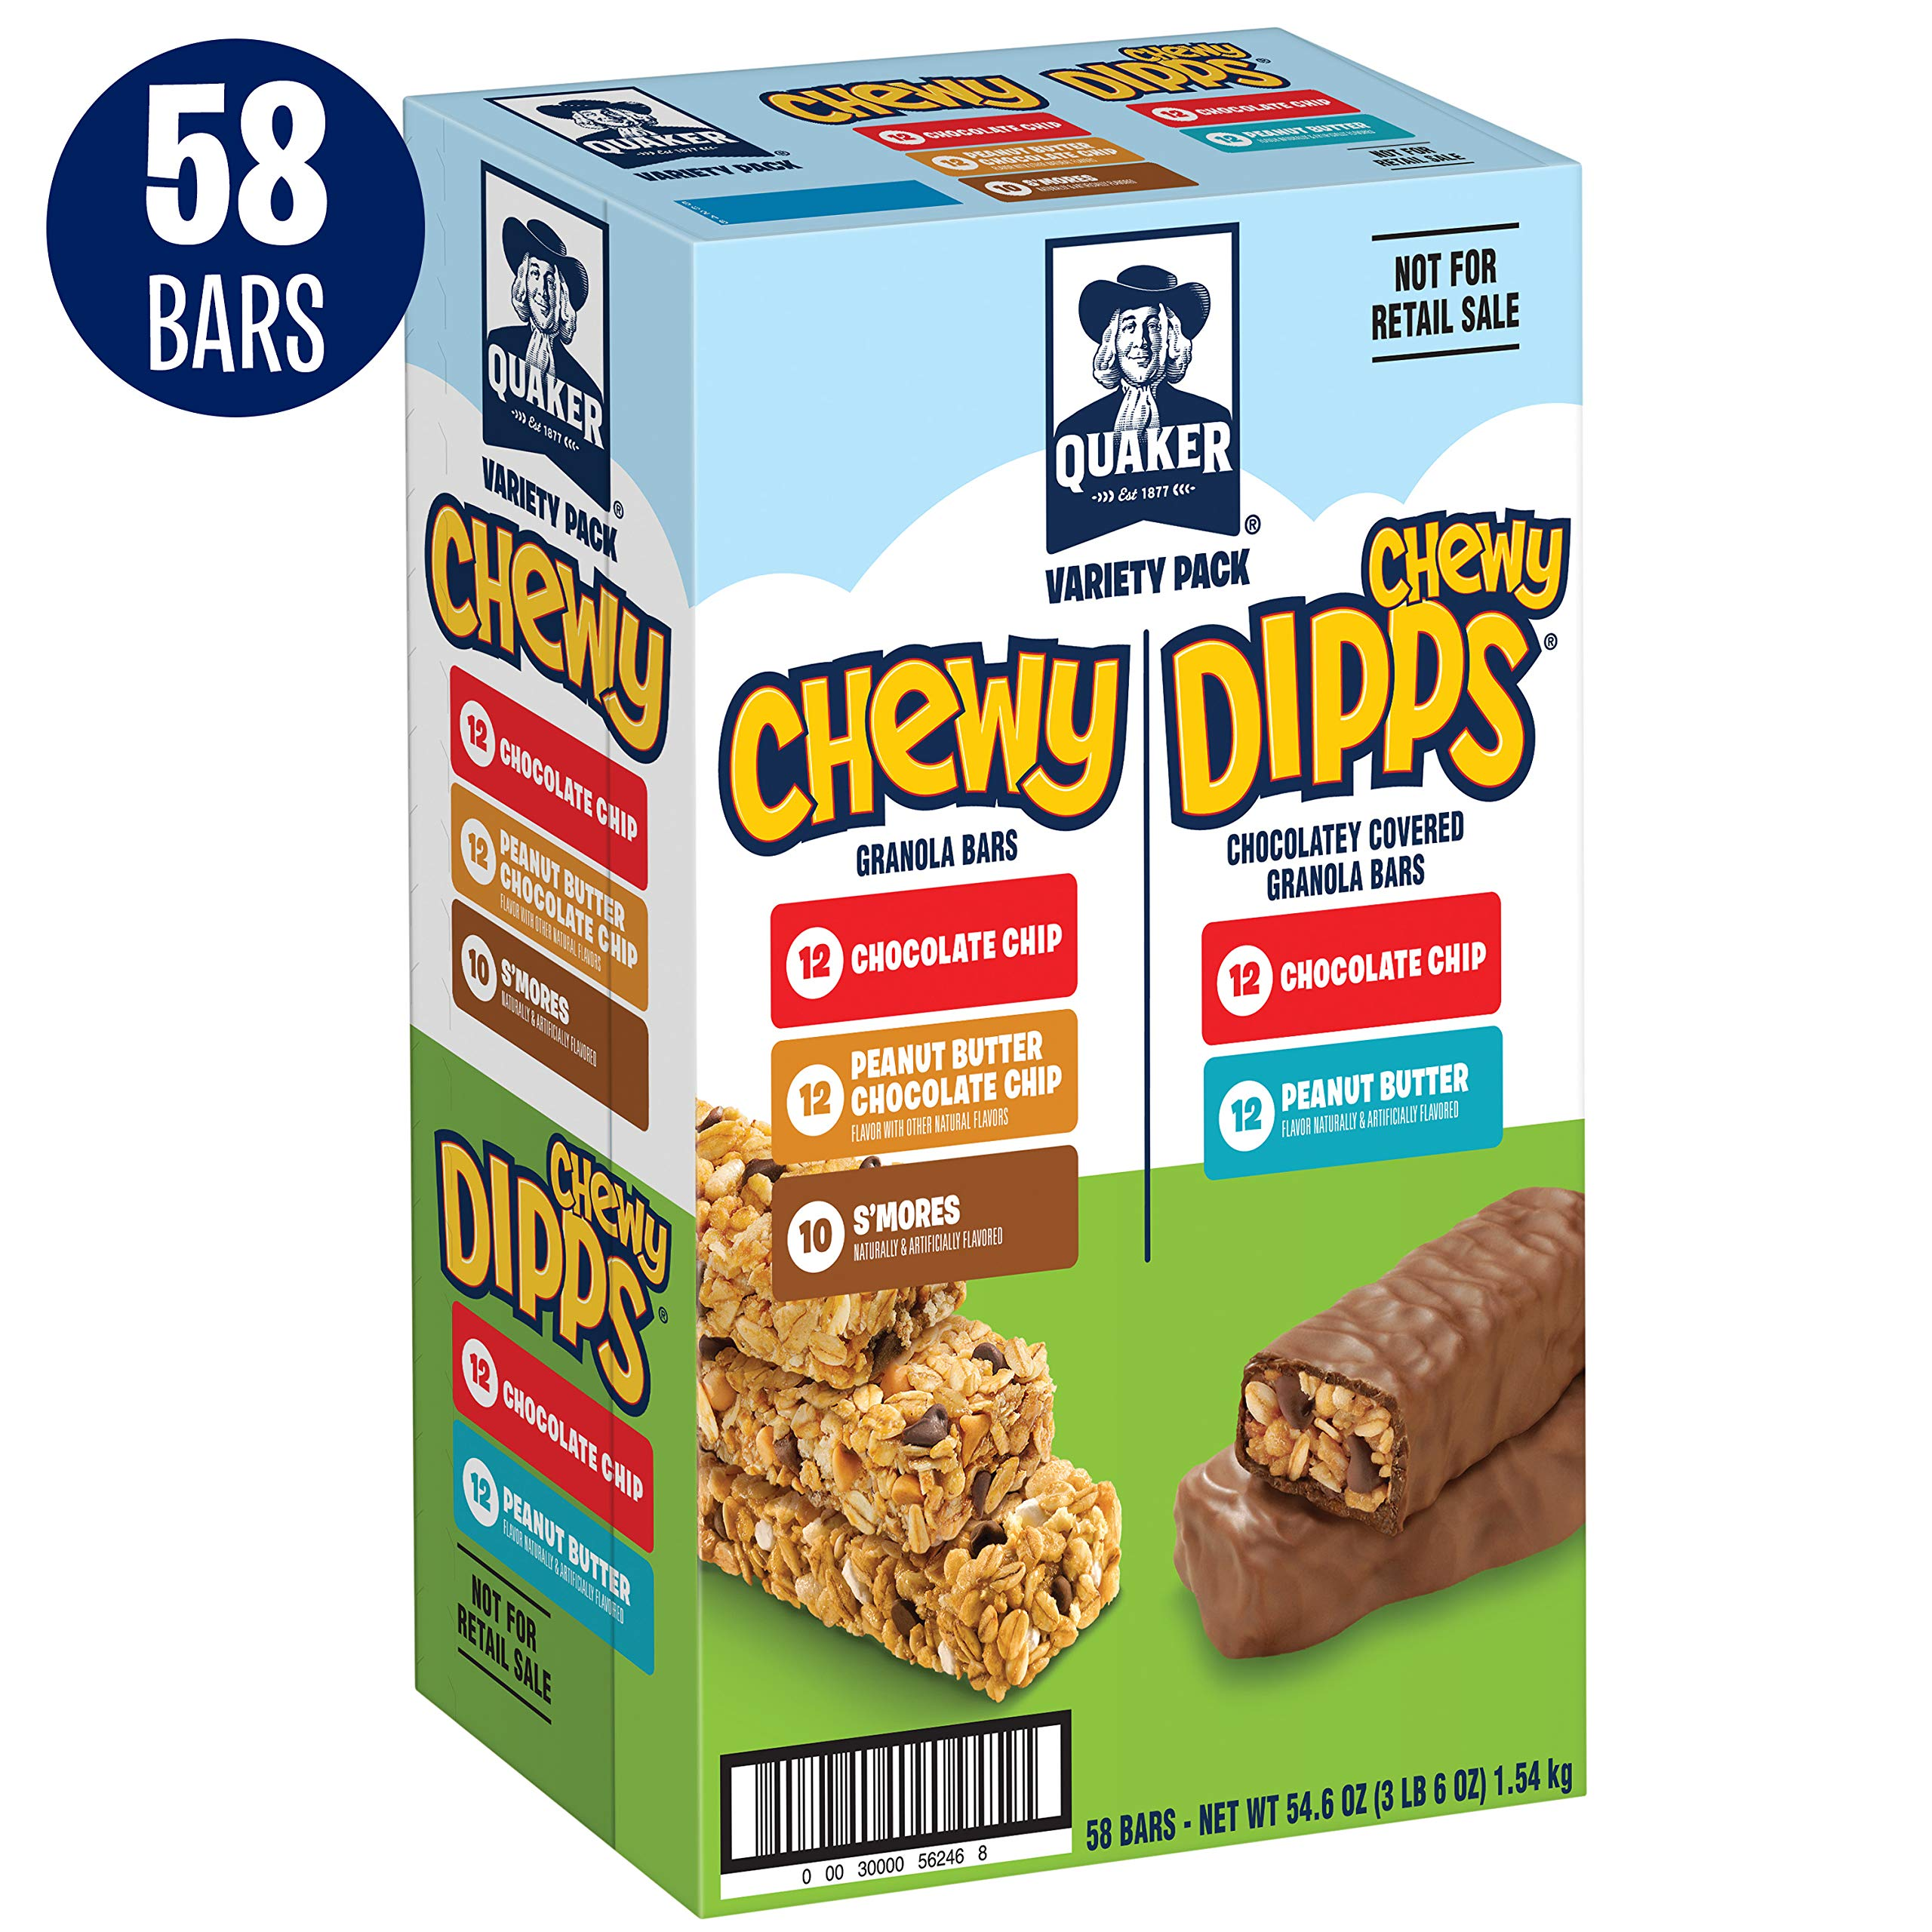 Quaker Chewy Dipps & Granola Bars, Variety Pack, 58 Bars by Quaker